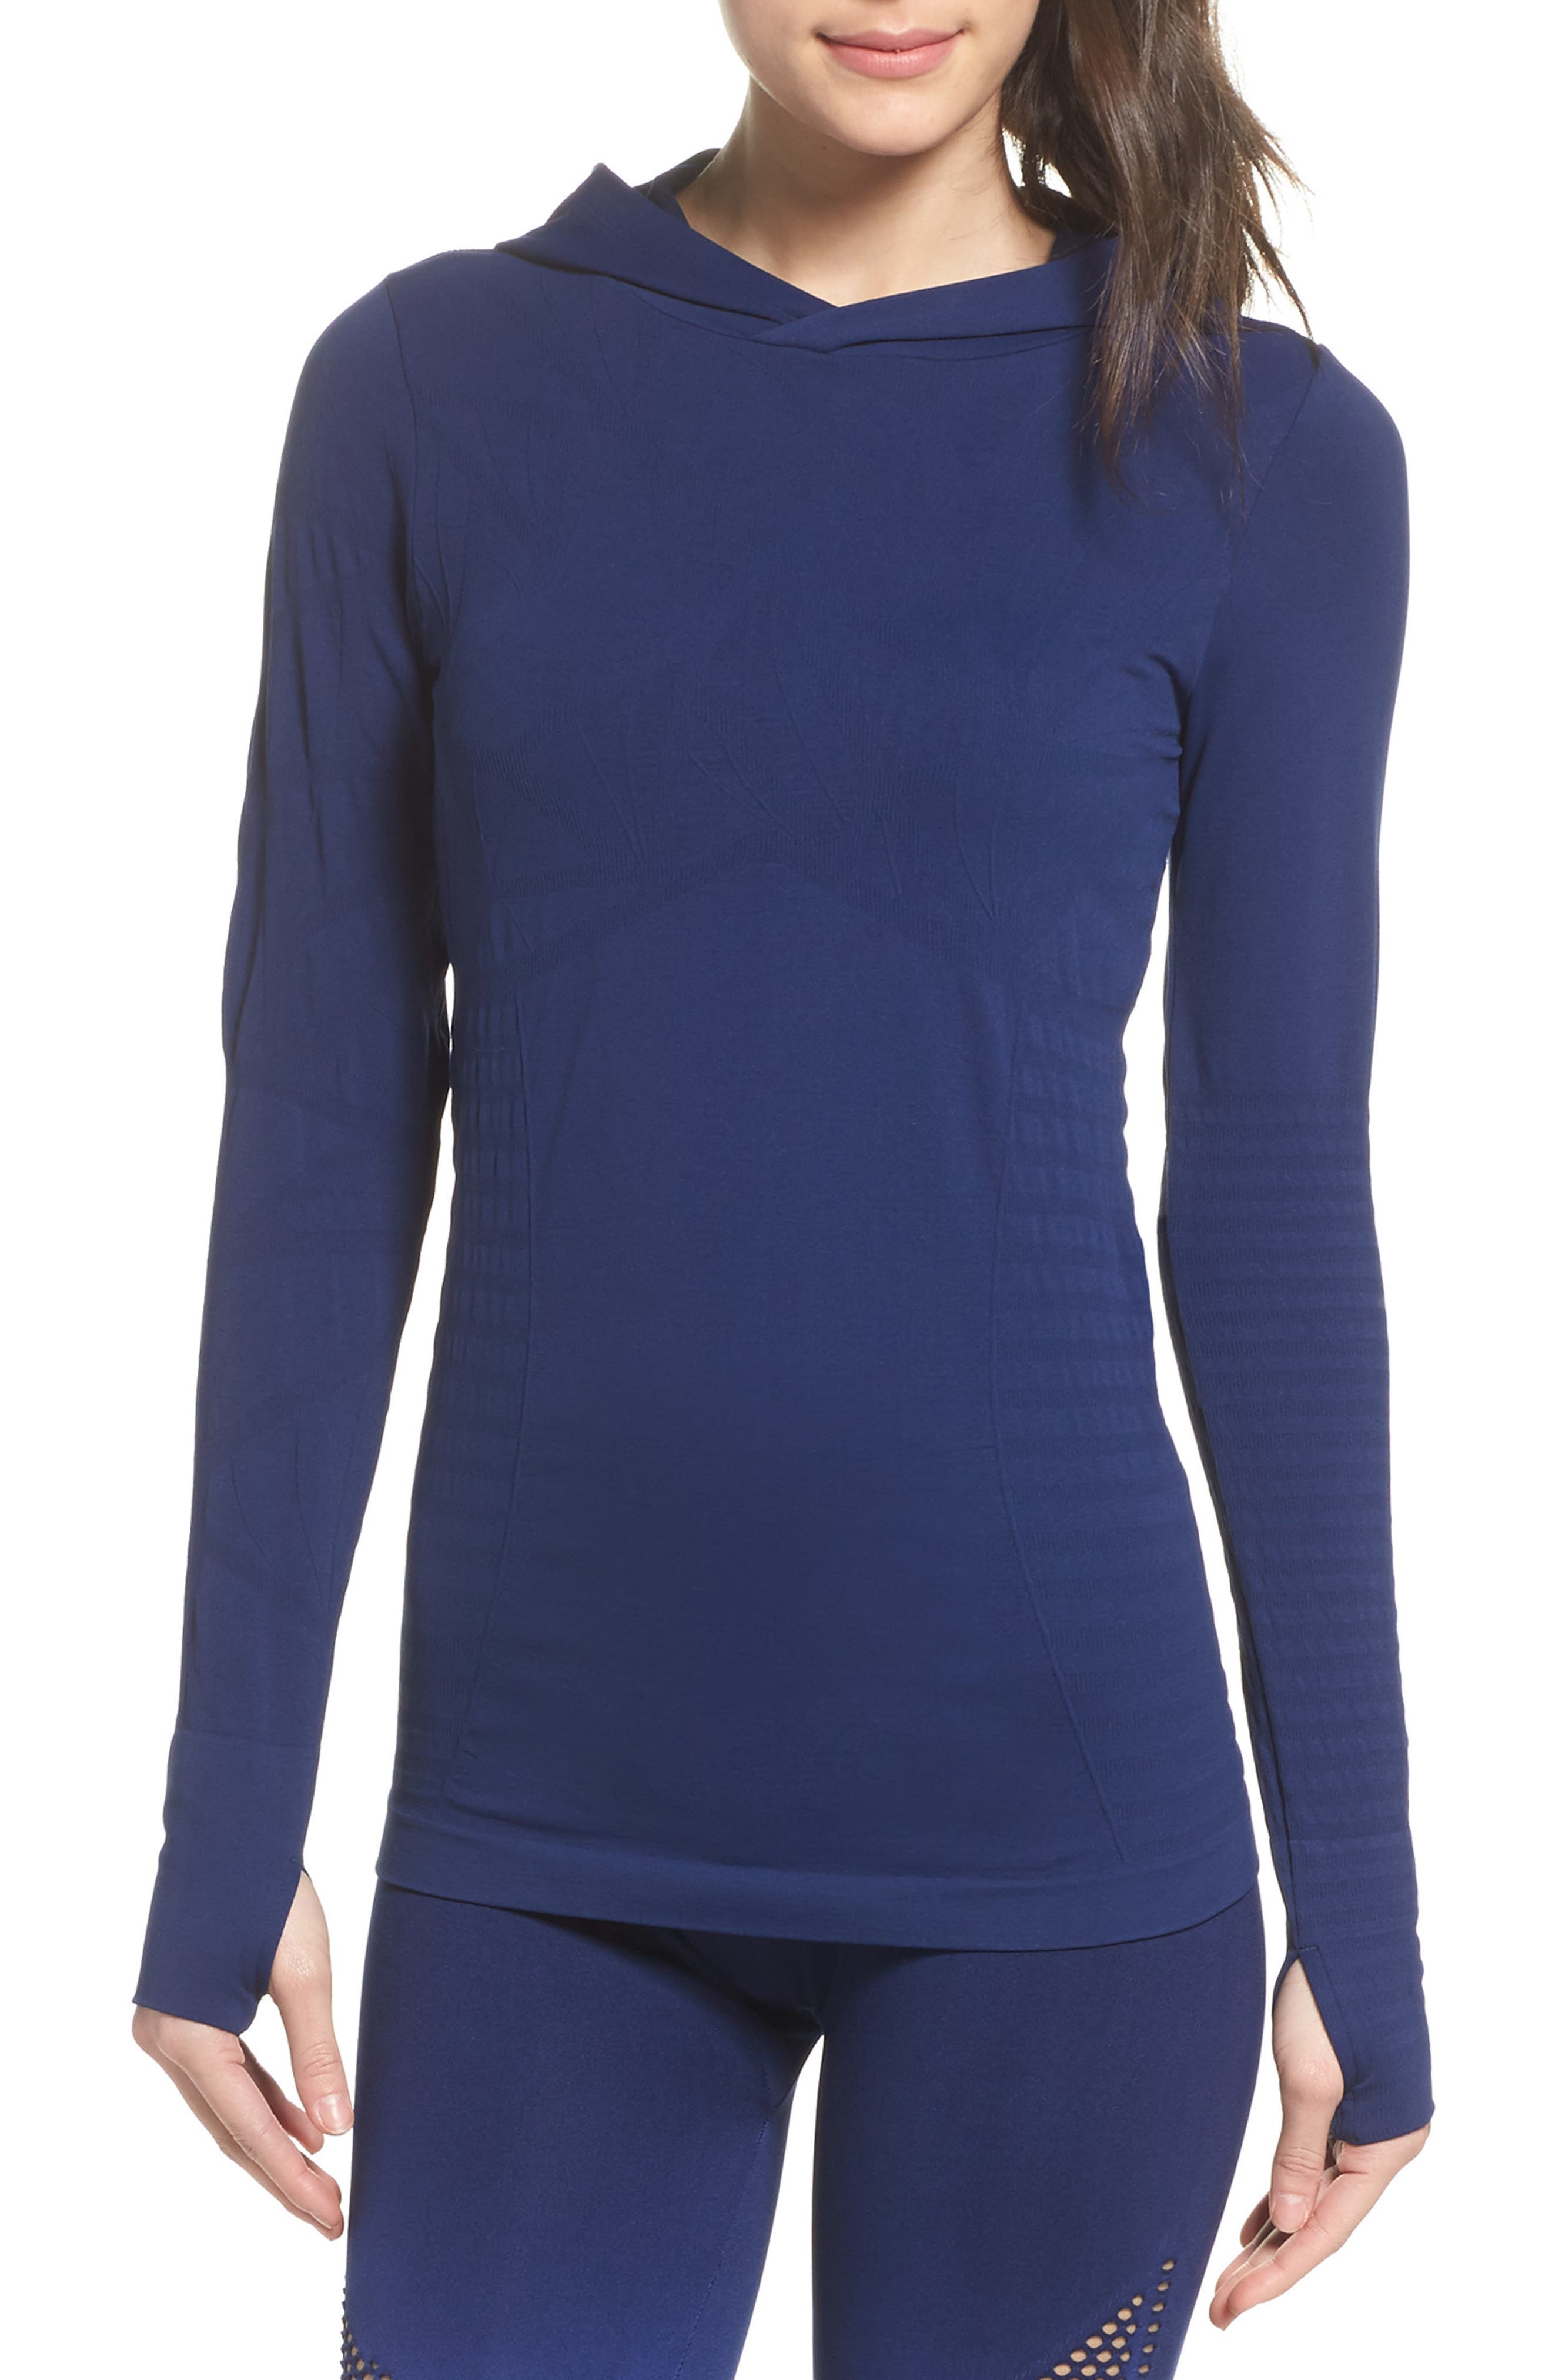 No Boundary Hoodie,                             Main thumbnail 1, color,                             Medieval Blue